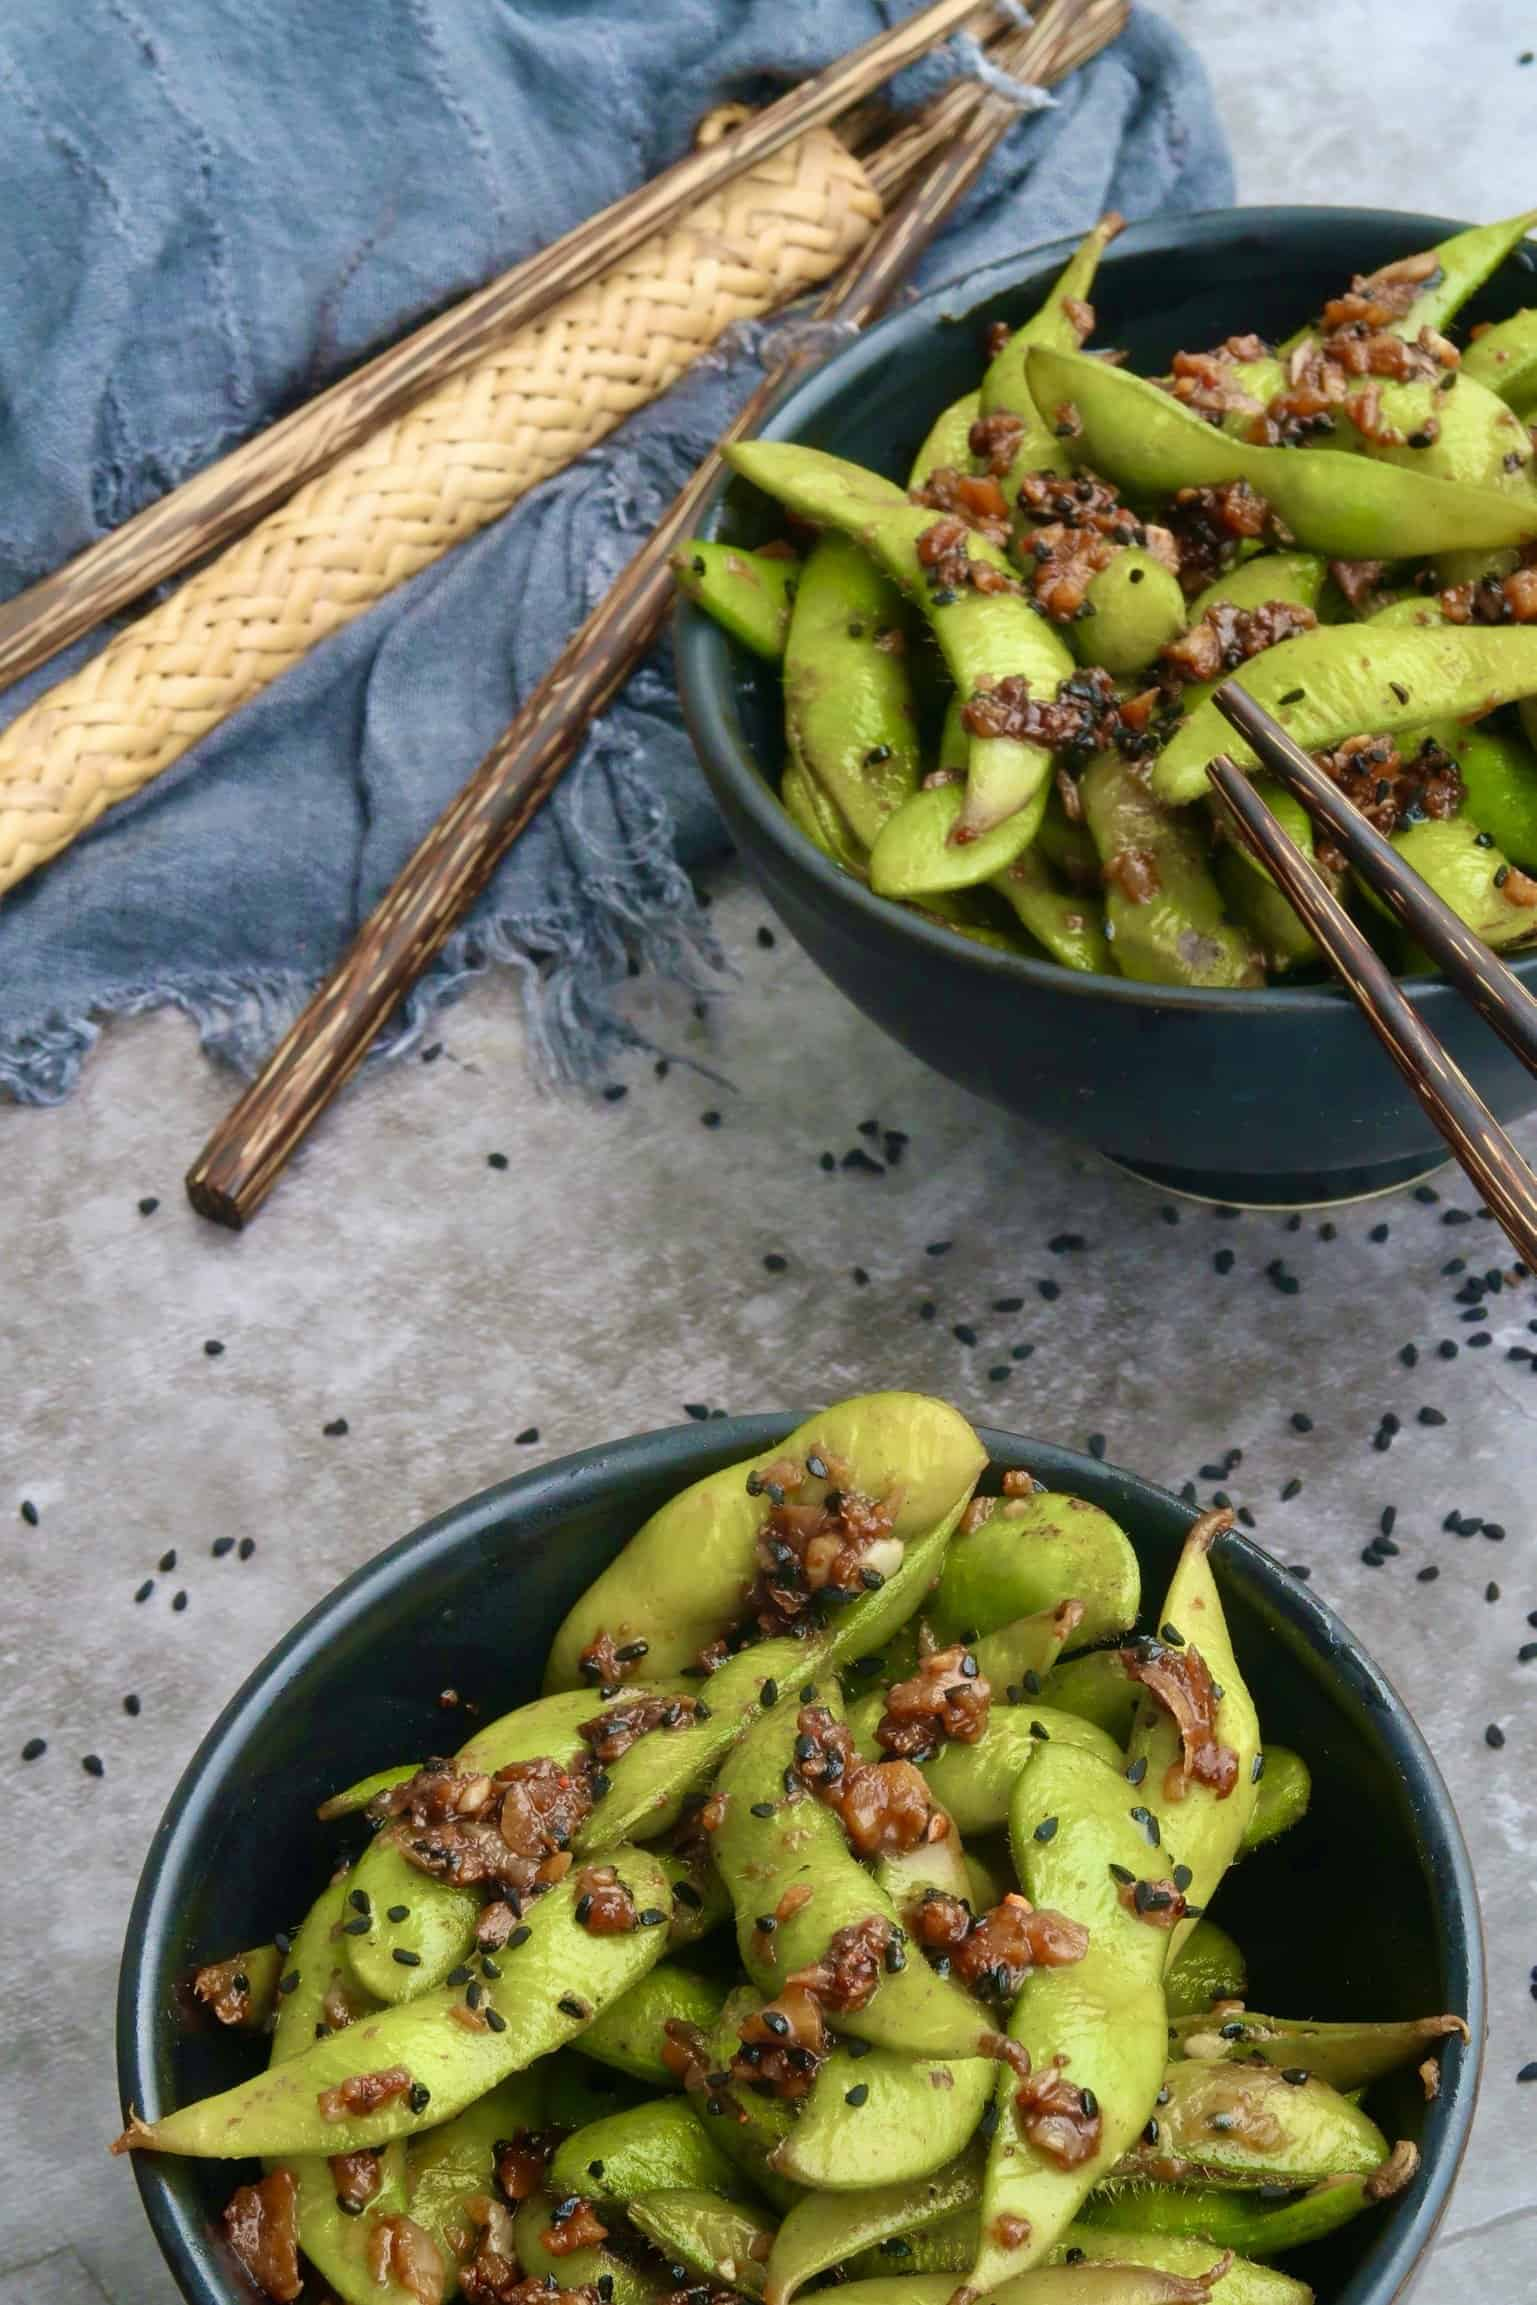 garlic chilli edamame served in two black bowls with chopsticks